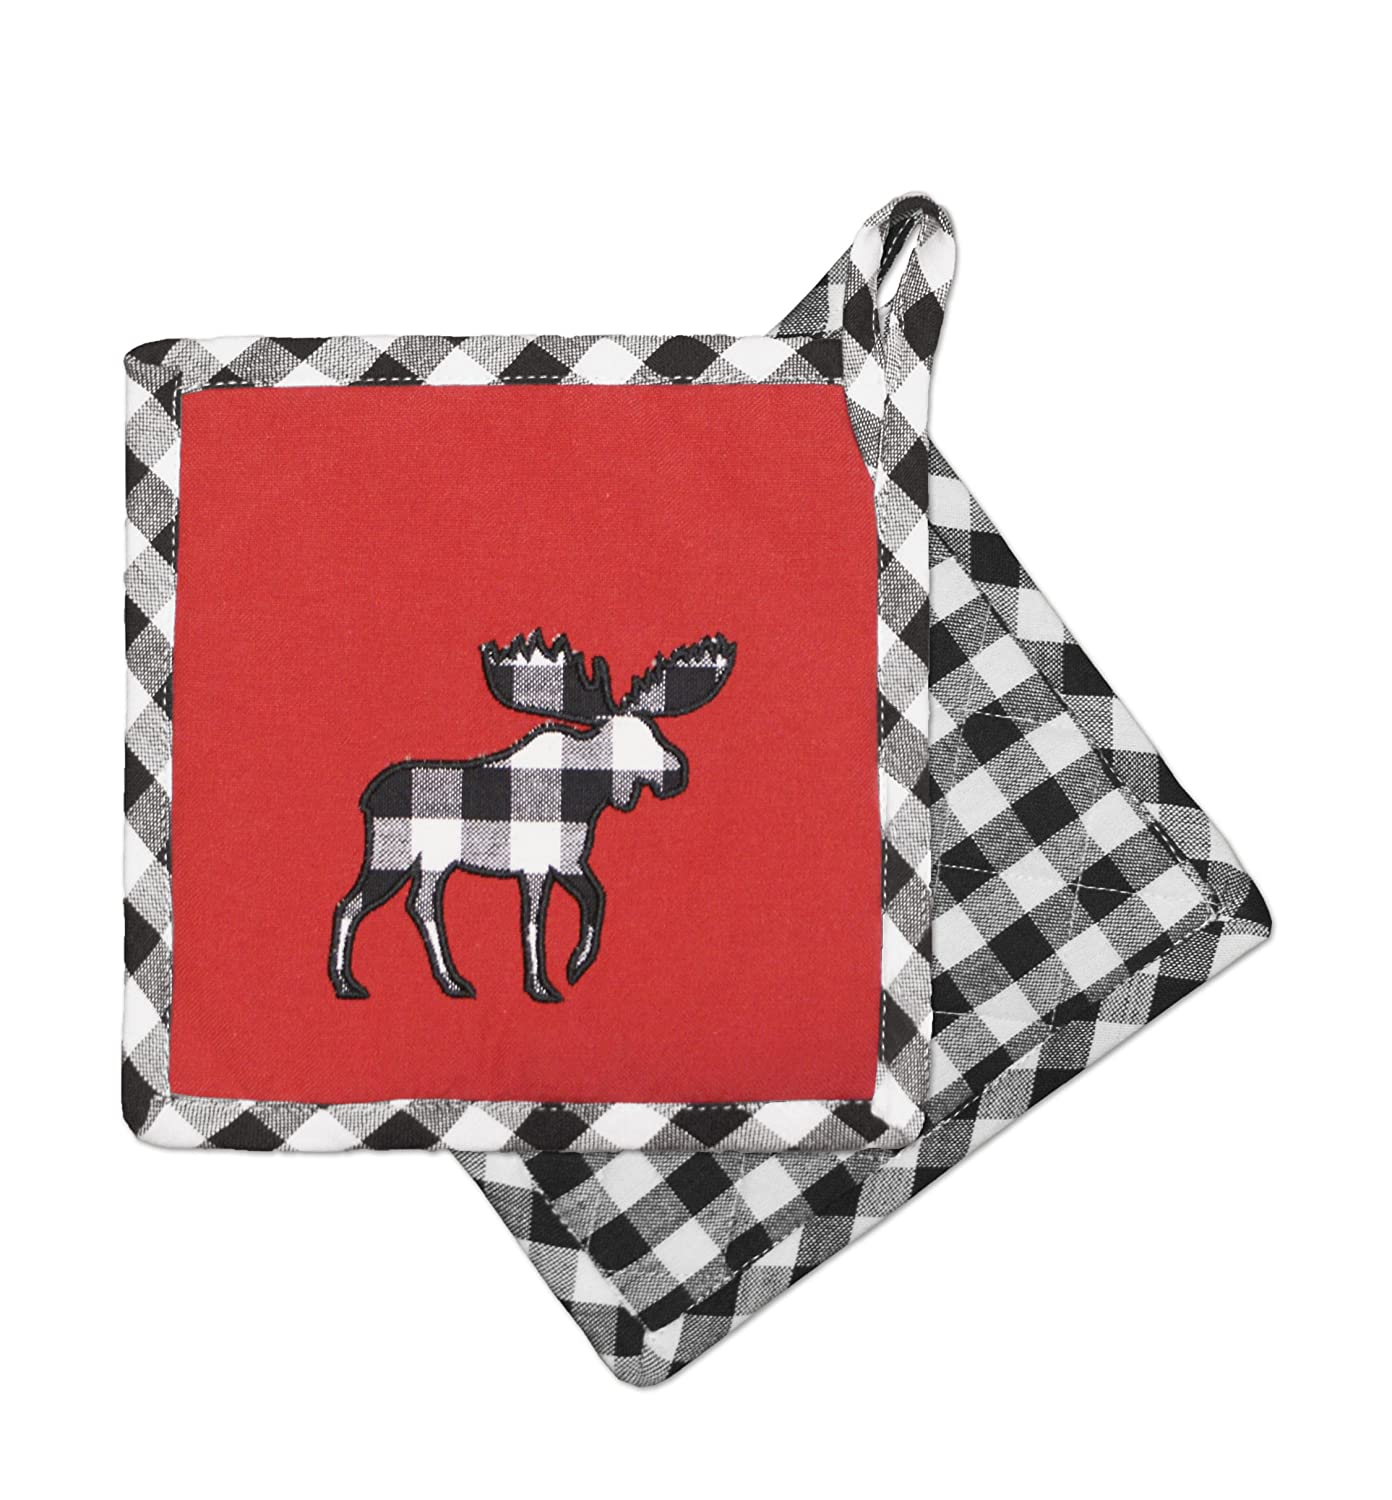 Hotel 77520 Moose Pair of Pot Holders-Blk/Wht, 8x8, Black White, 2 Piece Domay Inc.